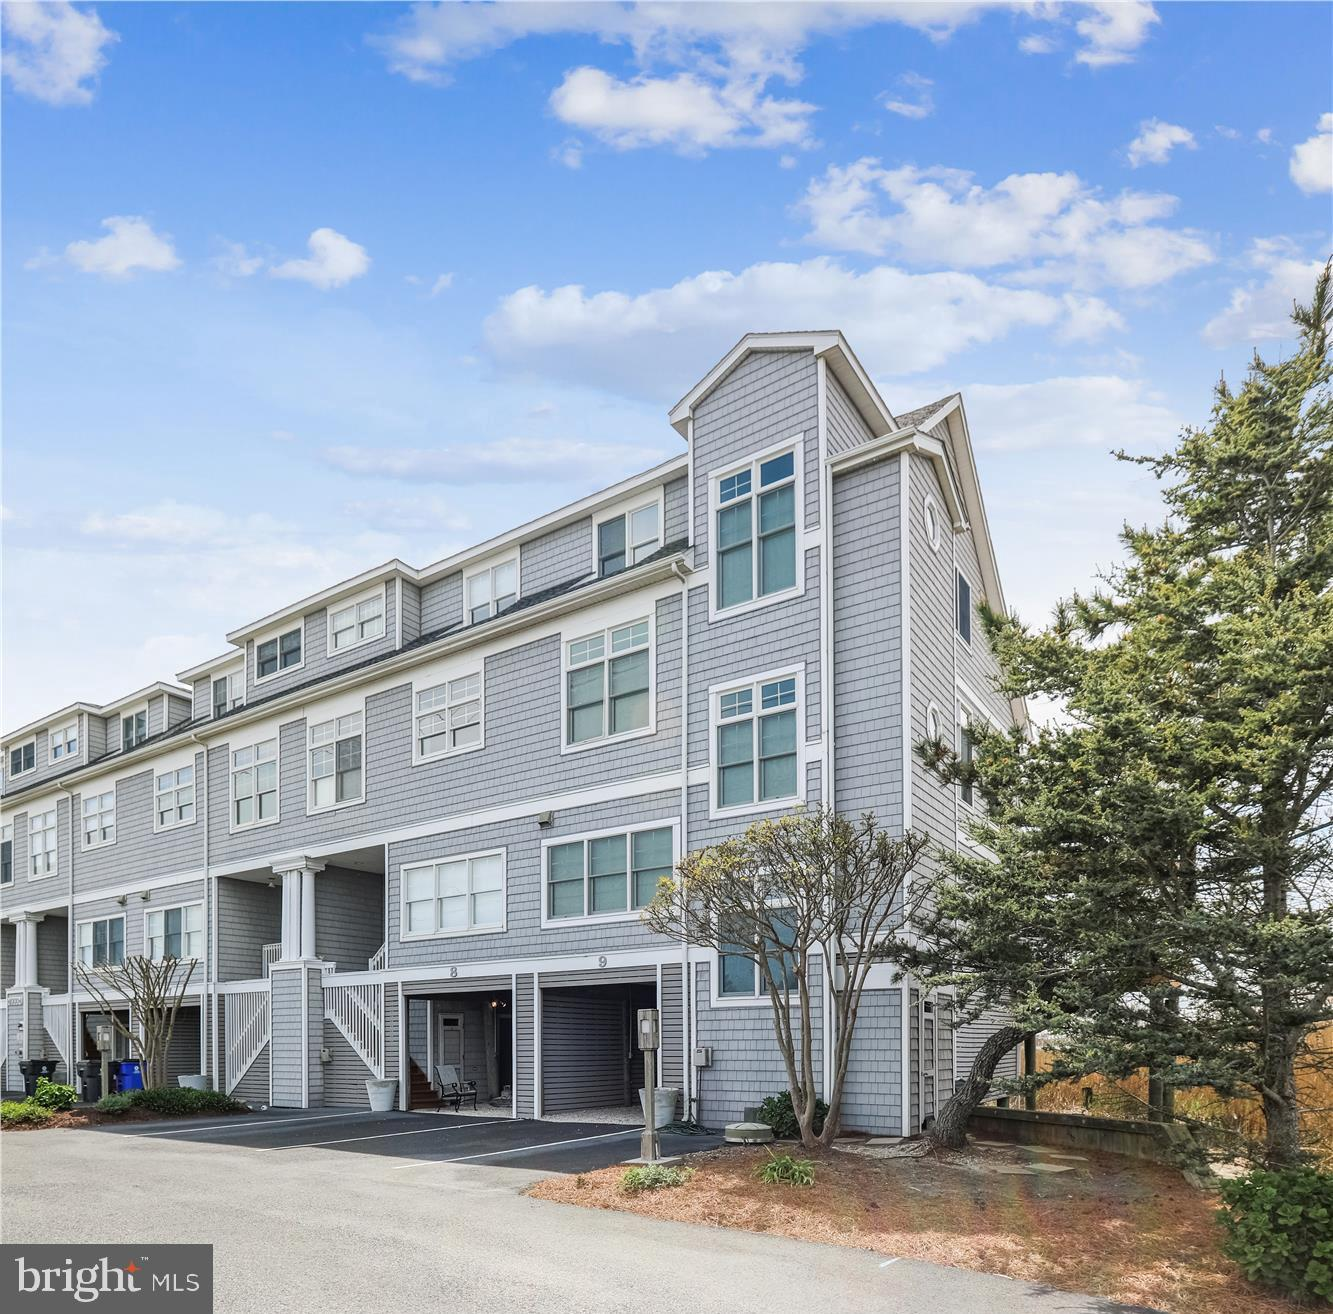 This amazing stretch of private communities feature the most sought after residences; all on the ocean or the bay yet a short bike ride or drive into both Bethany Beach and Fenwick Island. Both small towns offer eclectic shopping and a wide variety of restaurants.   Waters Edge is a quaint community of only 17 townhomes located directly on the bay ad feature beautiful ocean views as well.  9 Waters Edge is even sweeter; an end unit with 180' of ocean and bay views, from sunrise to sunset.  An entire floor is designated owners suite including a private bay front deck, sitting area in the master bedroom and study area.  At the end of the day; soak in the steeping tub overlooking the ocean. The home is used both by the owners and some rentals are booked each summer. 2021 Rental contracts are to be honored. Whether year round or seasonal Waters Edge has a place in your future.